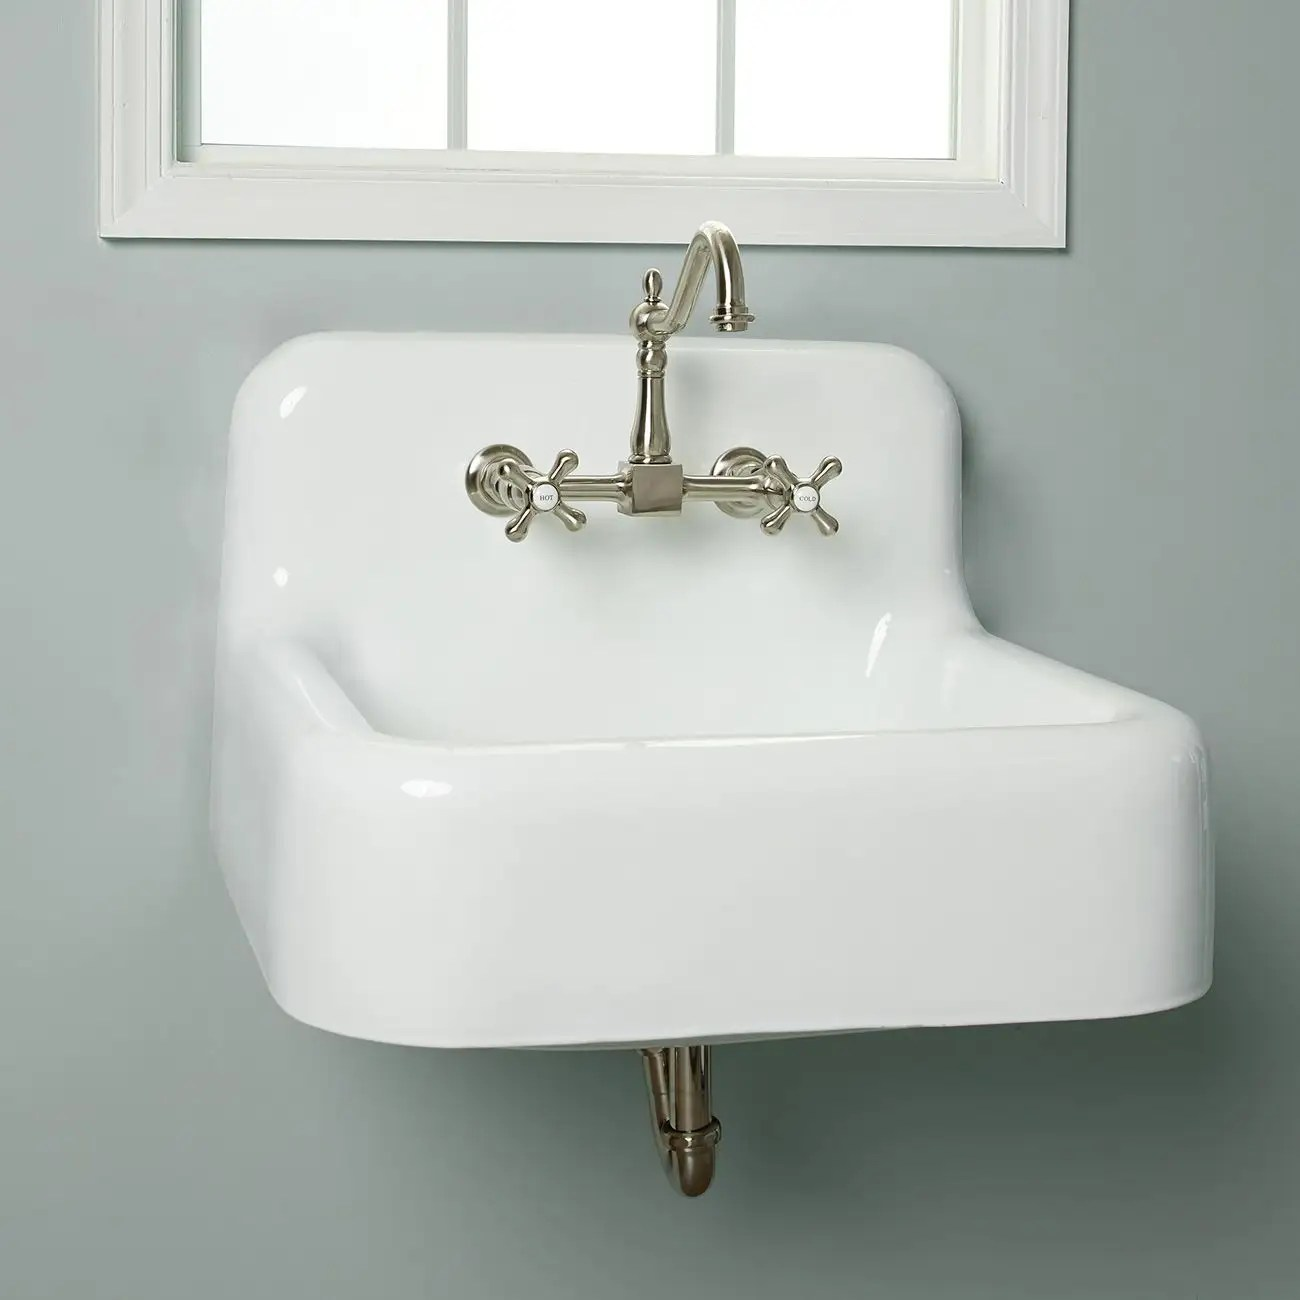 daisy 25 inch cast iron farmhouse sink 8 inch faucet drillings white